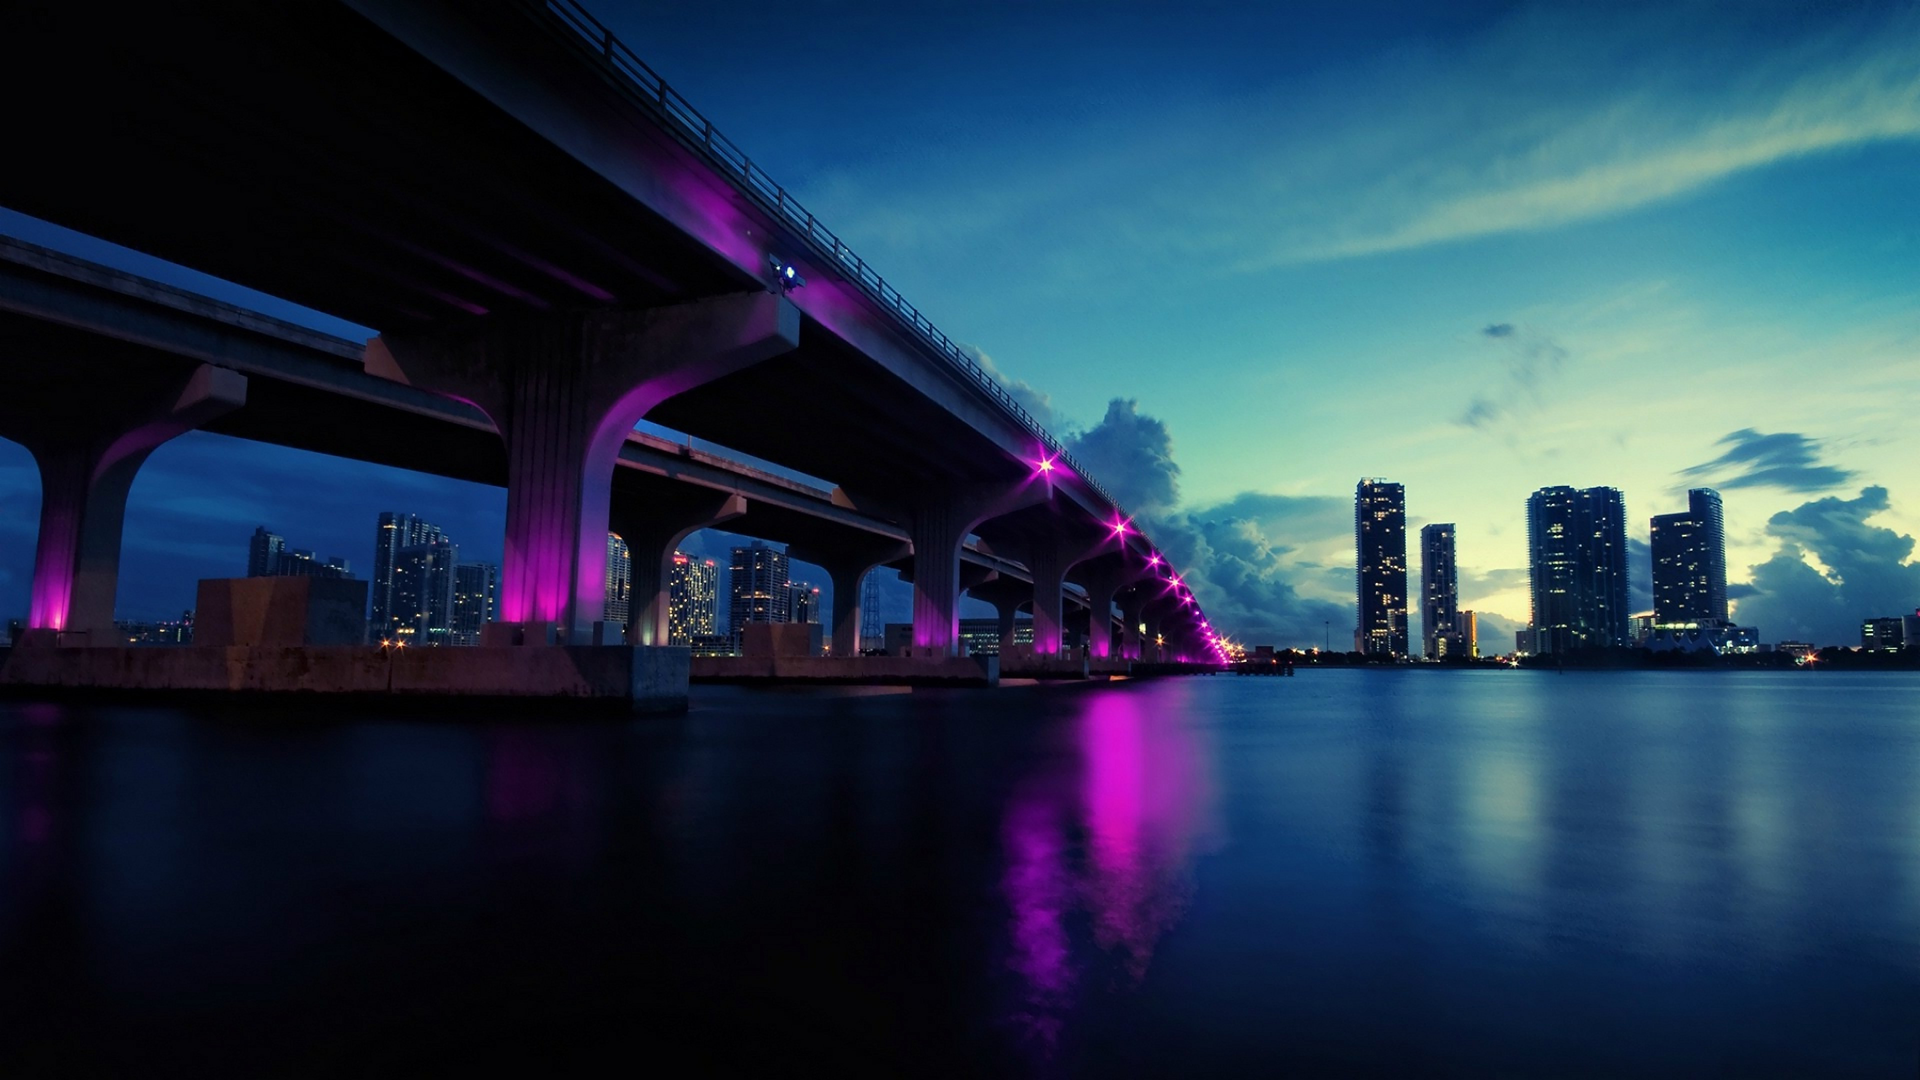 miami wallpaper displaying 9 images for miami wallpaper toolbar 1920x1080